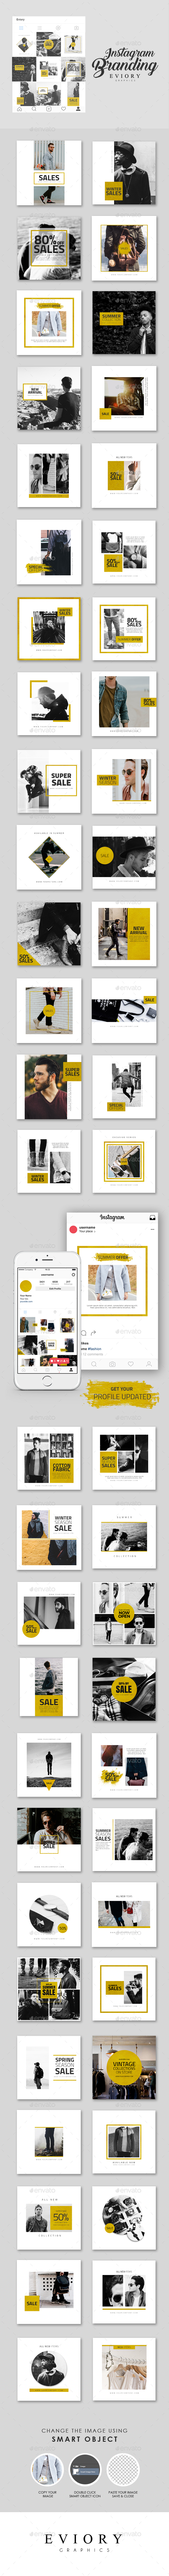 Instagram Branding Gold Edition - Social Media Web Elements